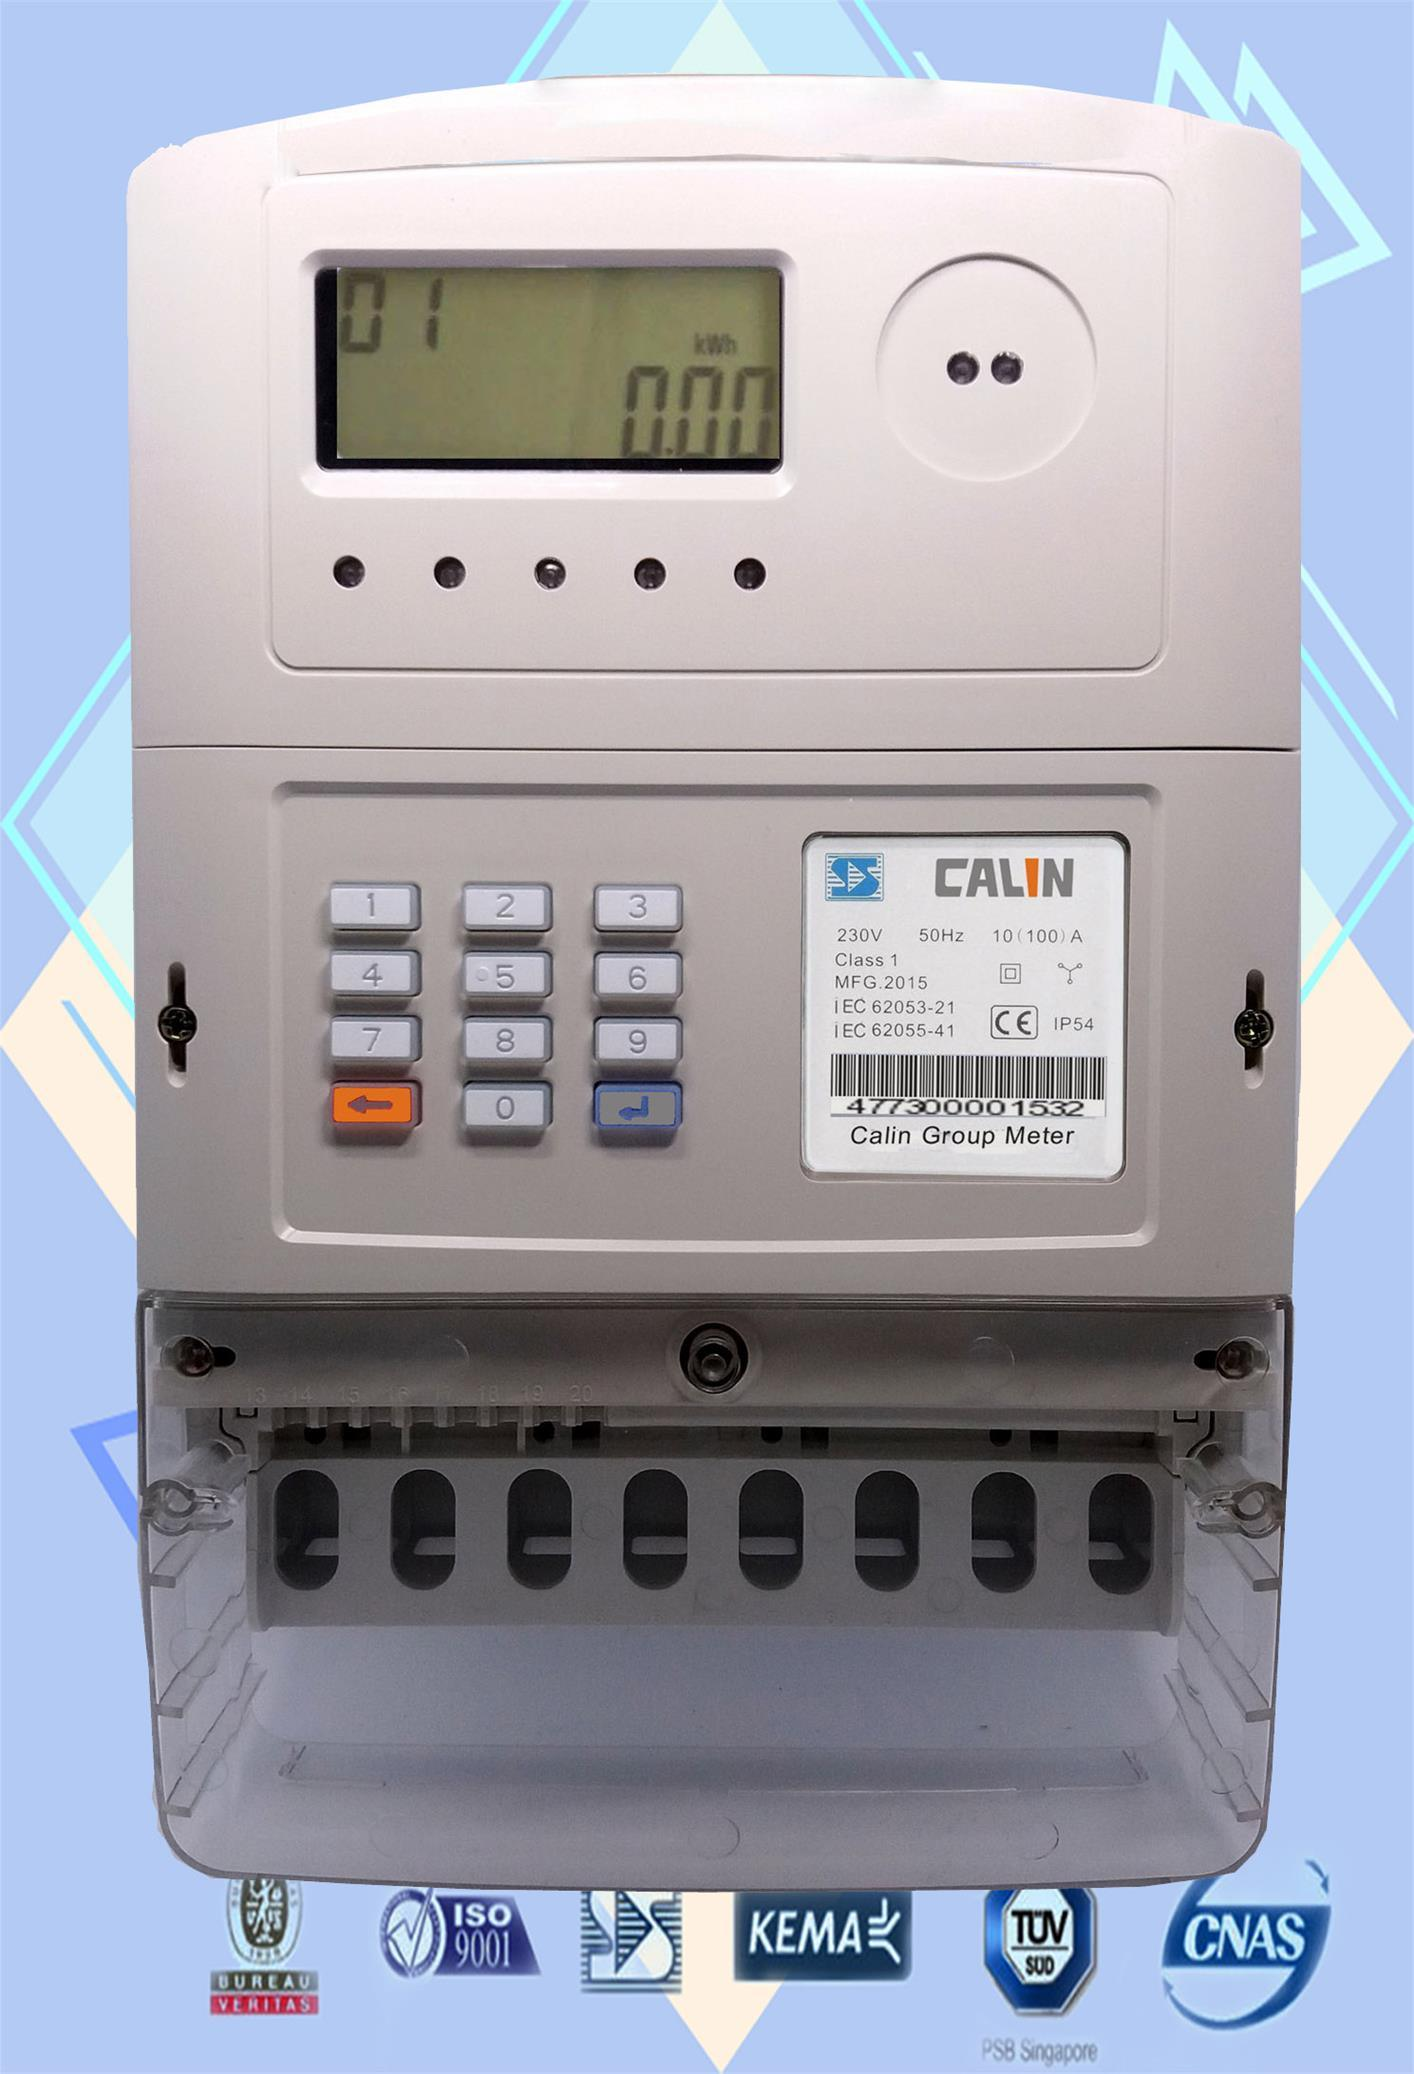 Three Phase Sts Keypad Prepaid/Prepayment Meter with GPRS Module